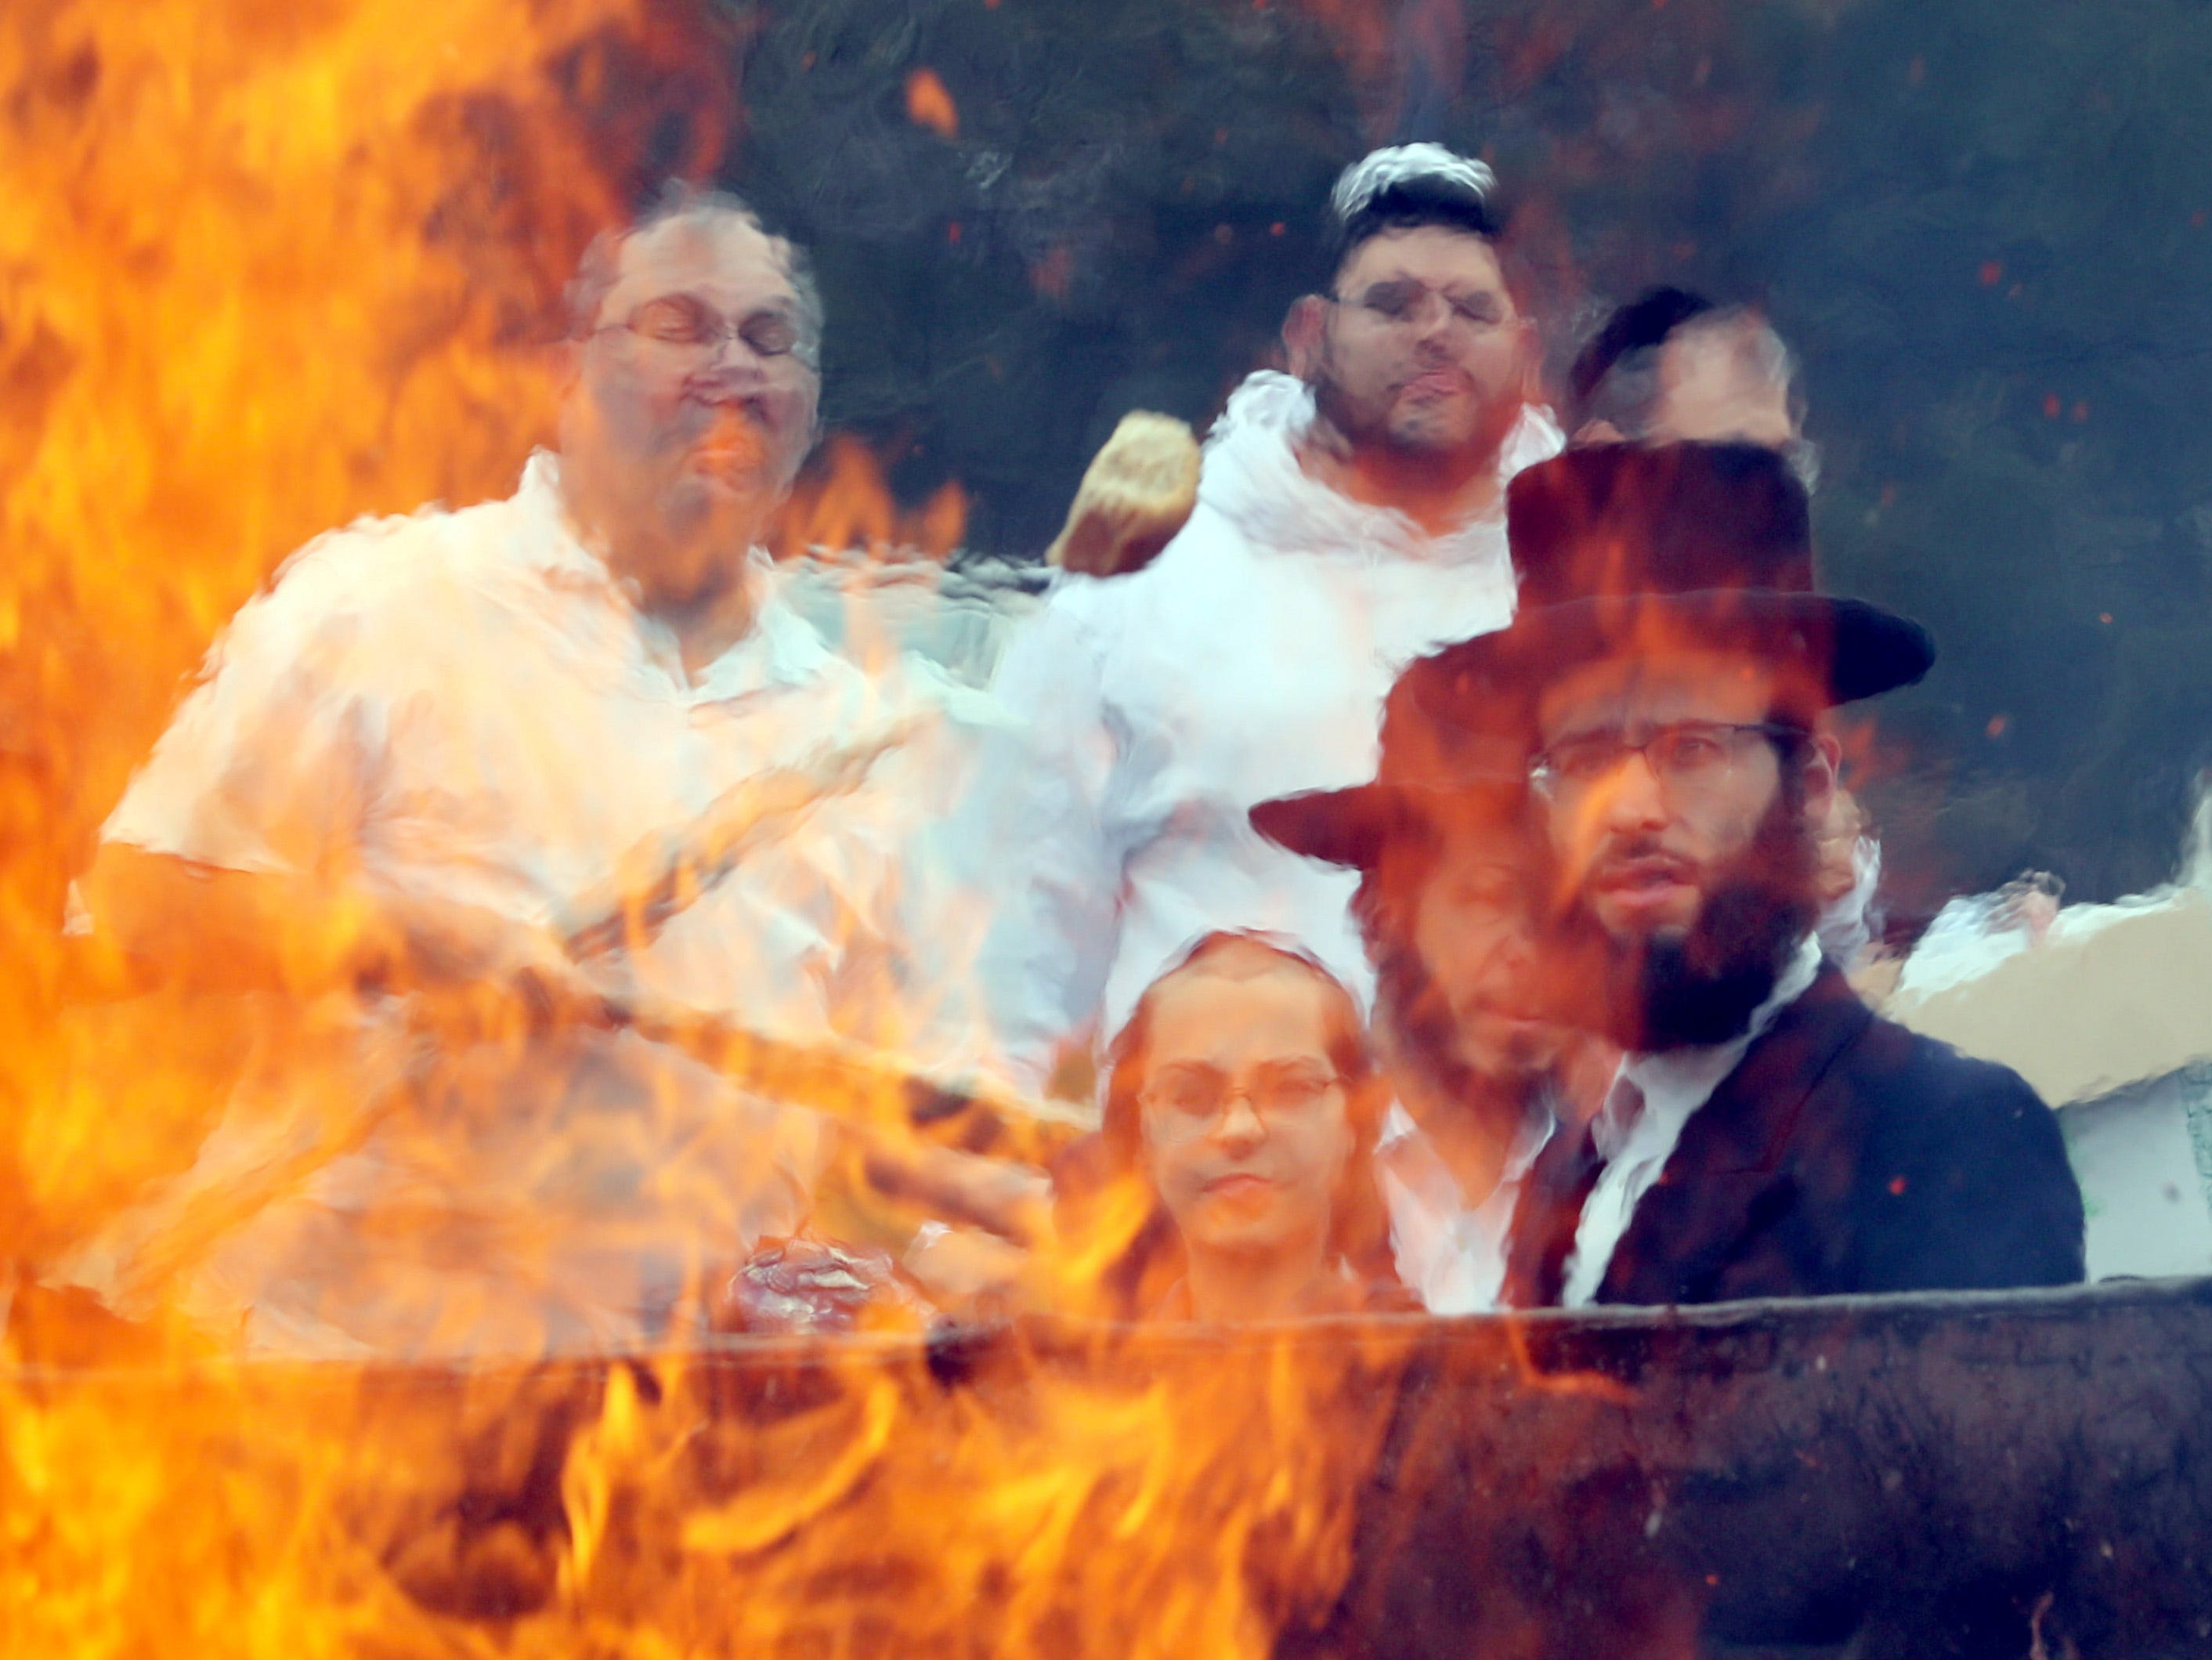 March 30, 2018: Members of the Orthodox Jewish community throw bread products into a fire at the old drive-in theater on route 59 in Spring Valley, N.Y. before the start of Passover.